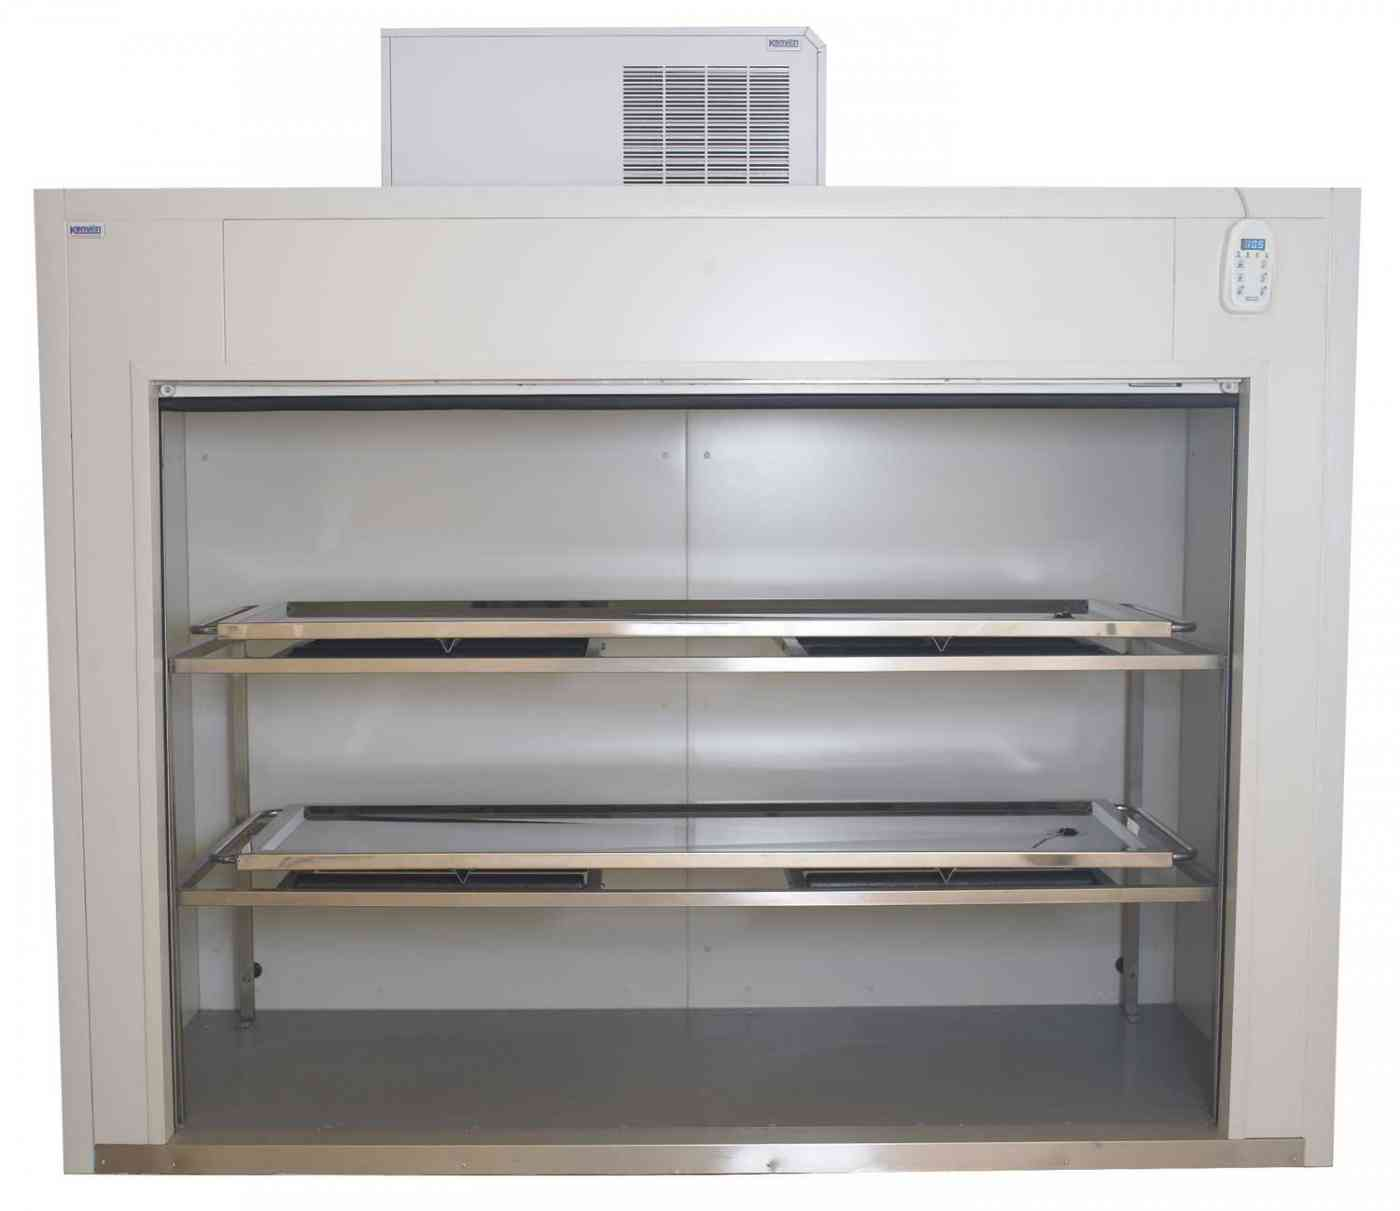 2 body lateral cold chamber